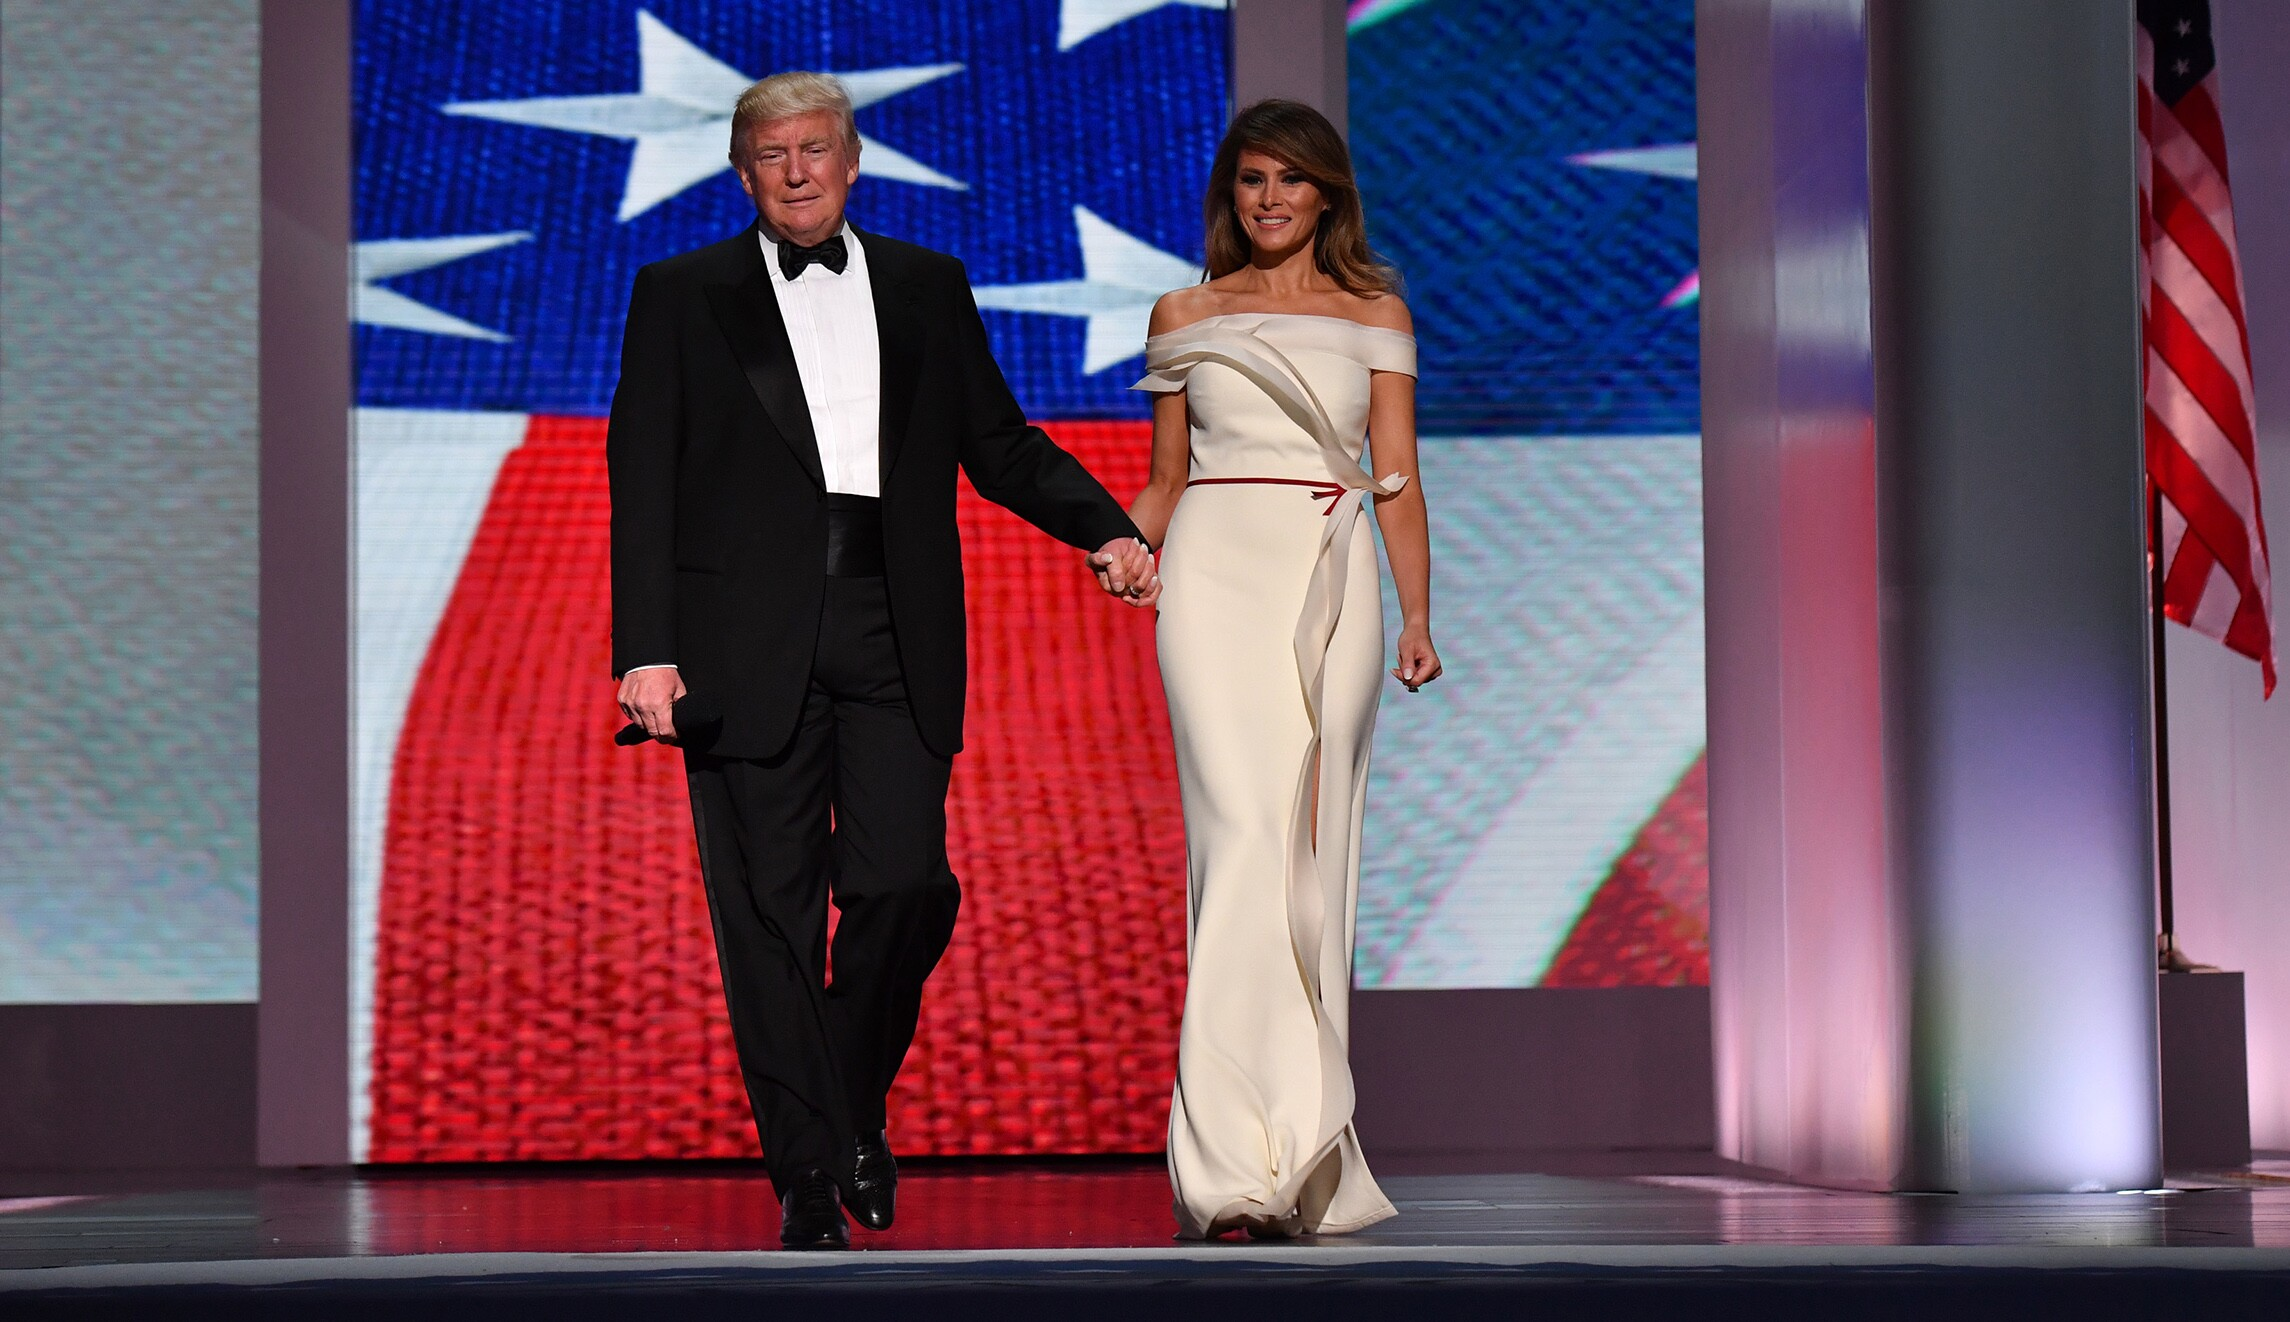 Melania Trump to donate inaugural gown to Smithsonian museum